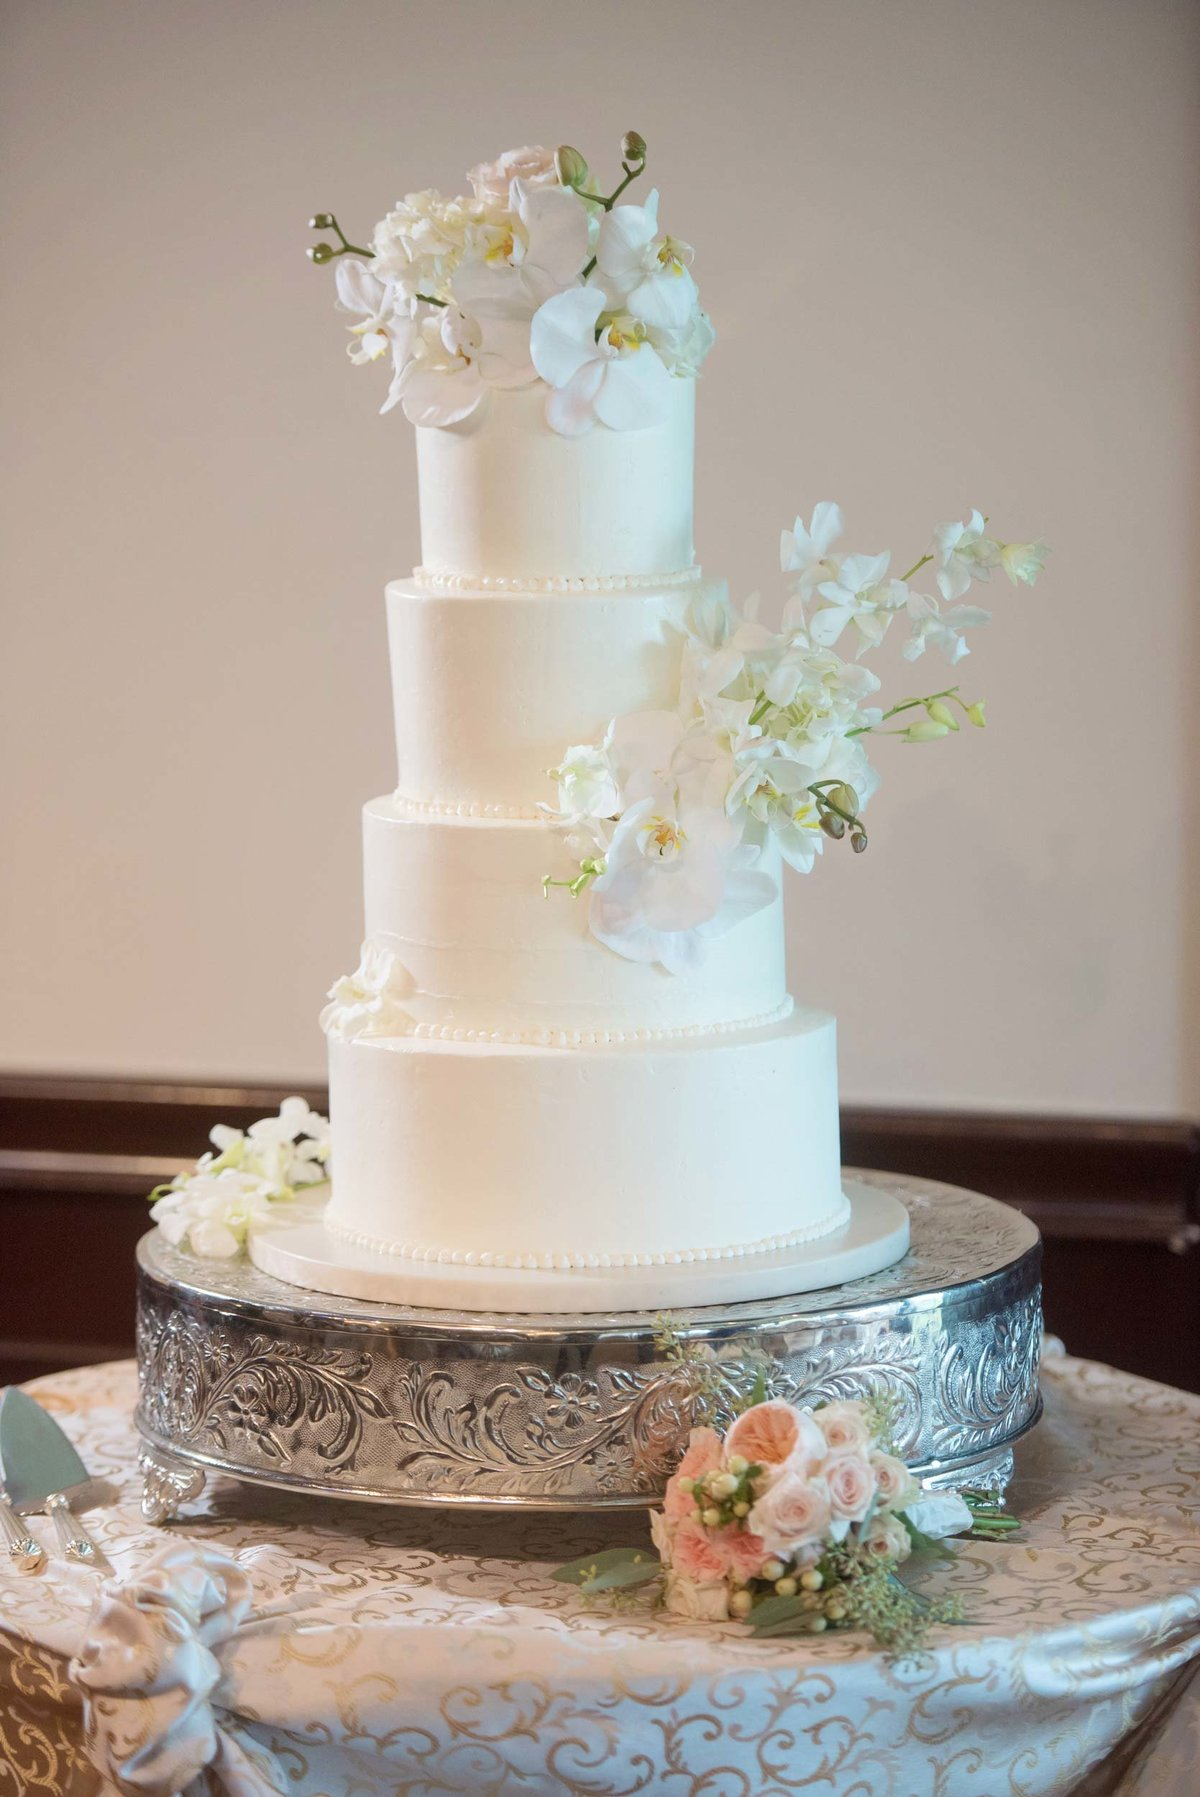 White wedding cake with white flowers at Huntington Crescent Club